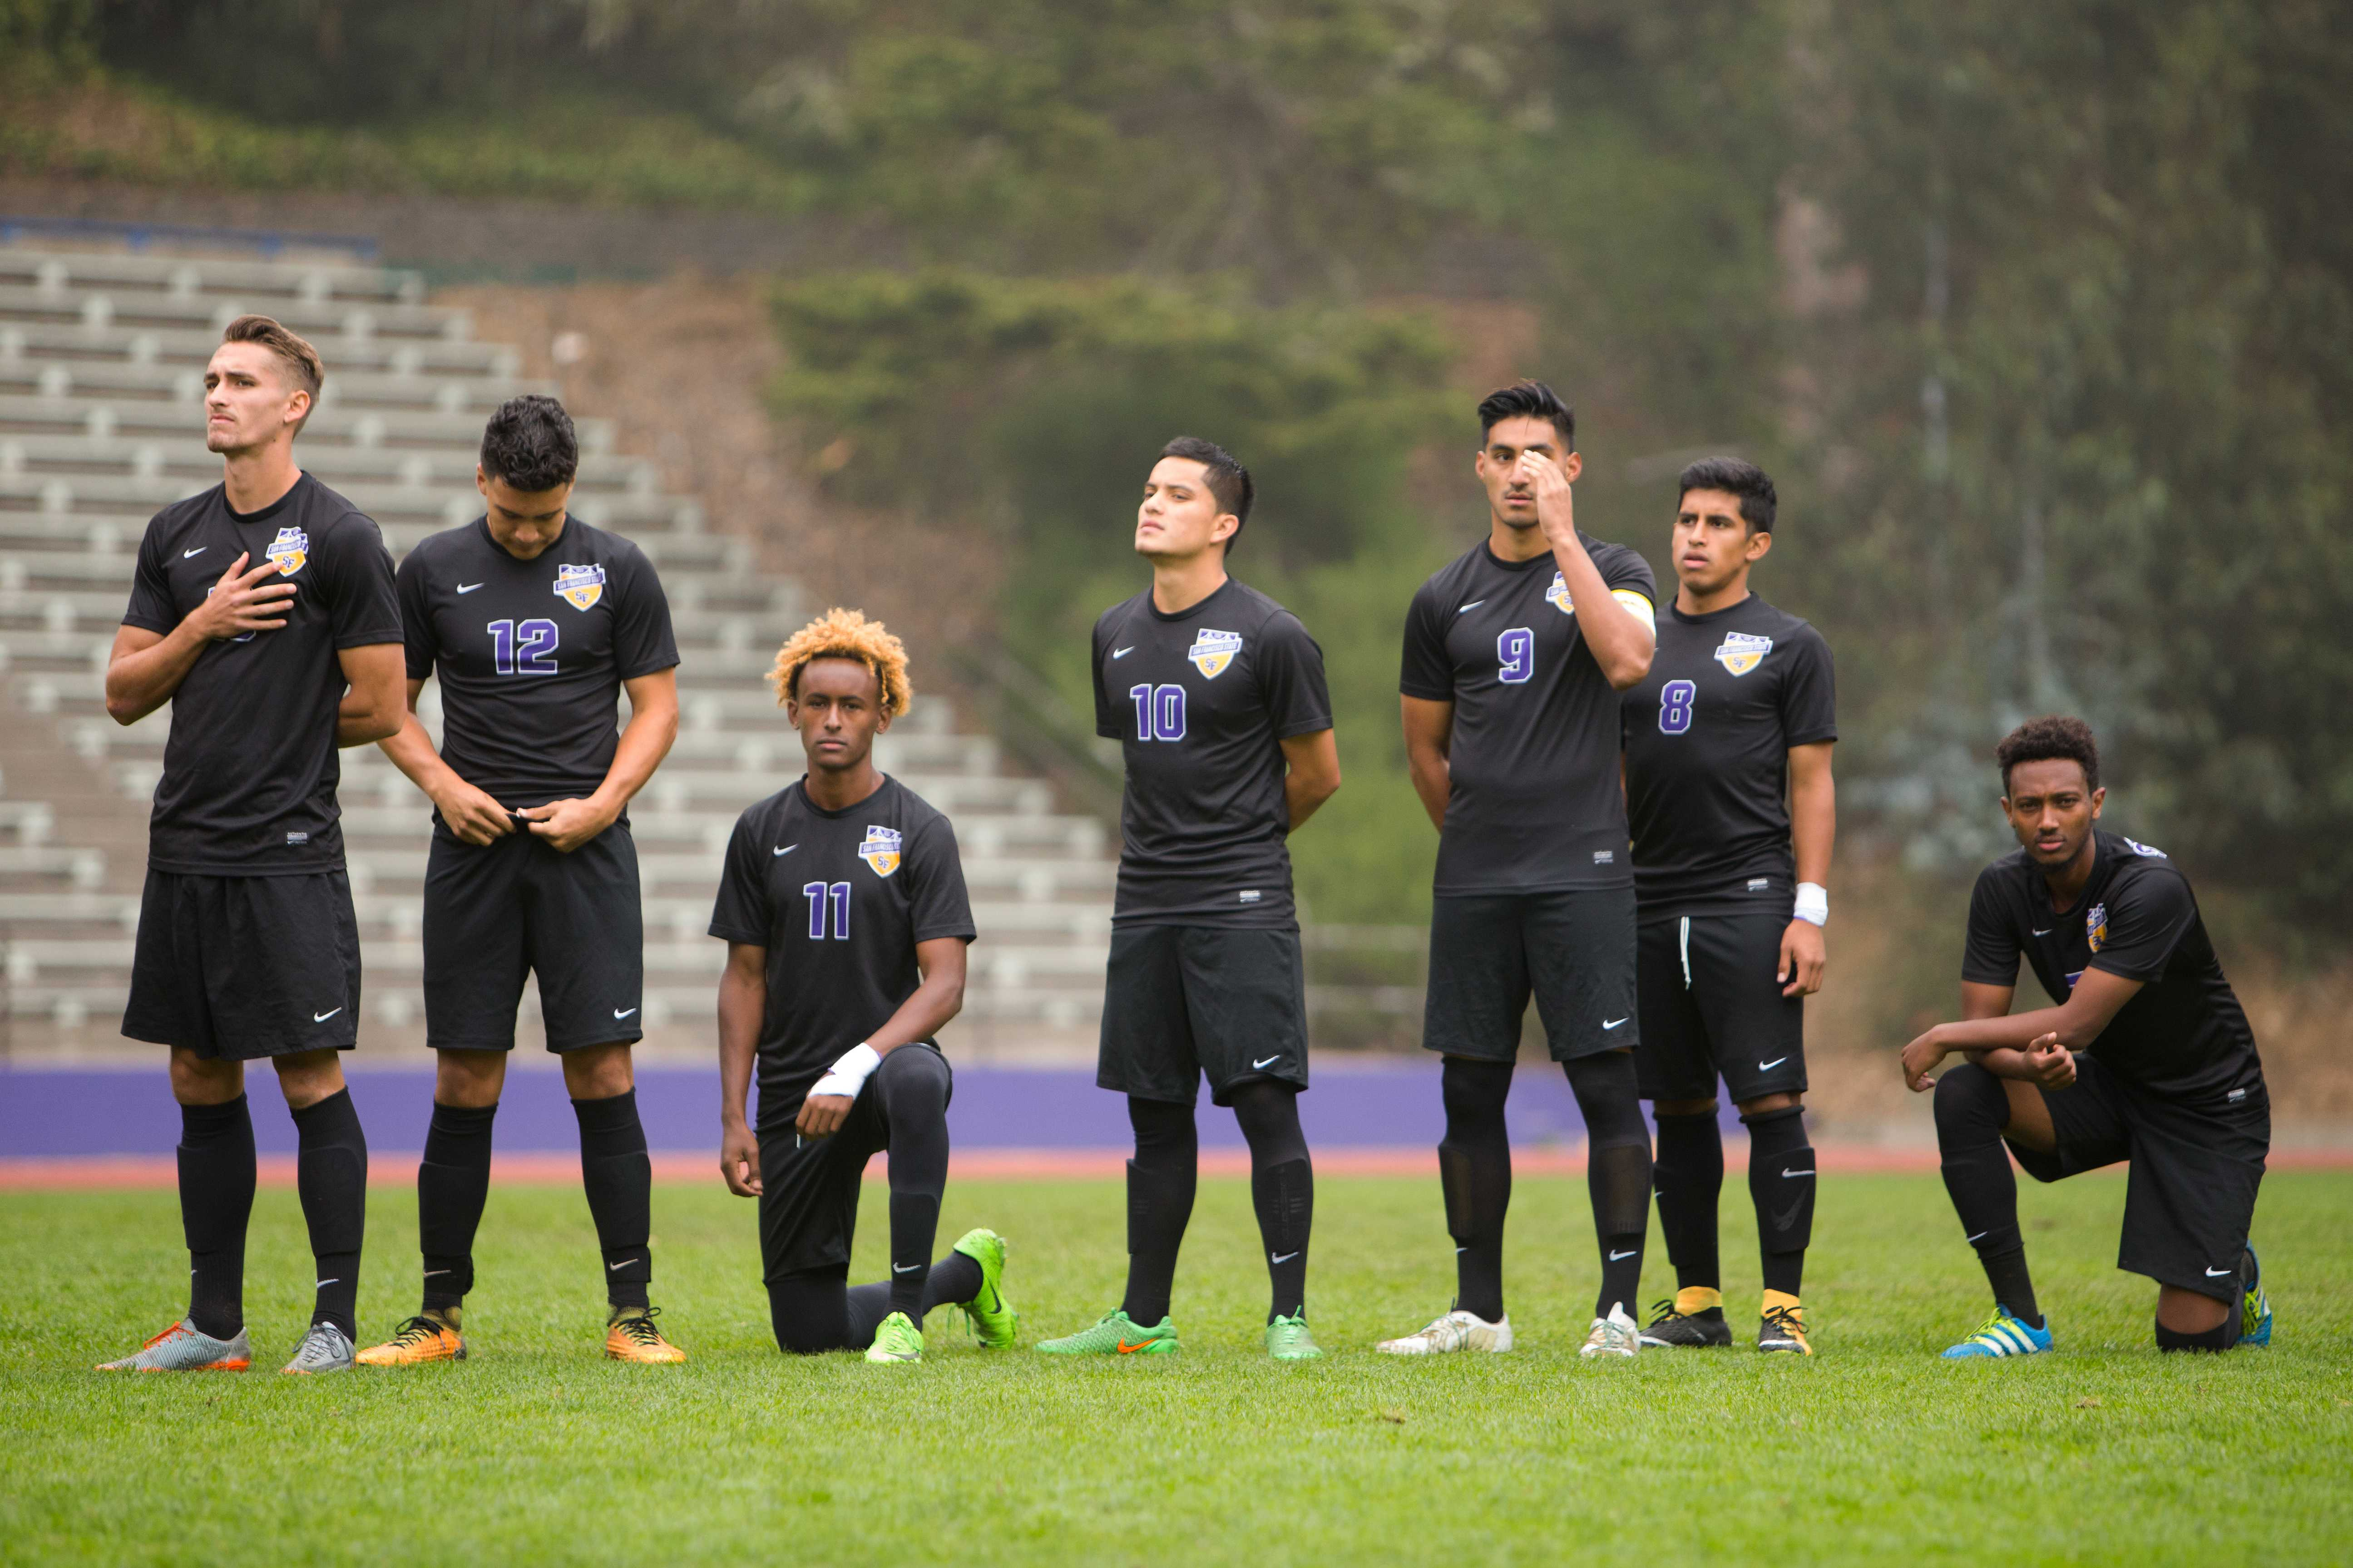 Members of the SF State Men's soccer team kneel during the National Anthem. (Golden Gate Xpress/Mitchell Mylius)